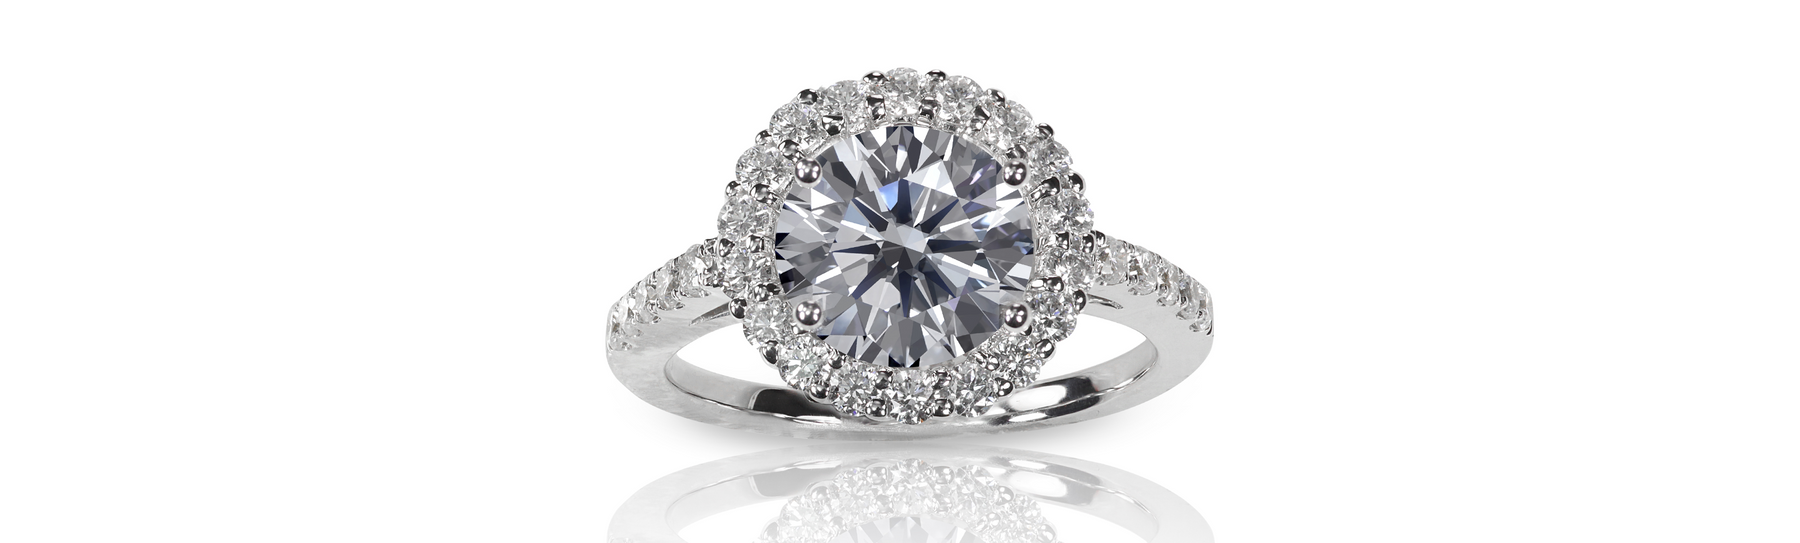 Halo Engagement Rings - A New Level Of Elegance